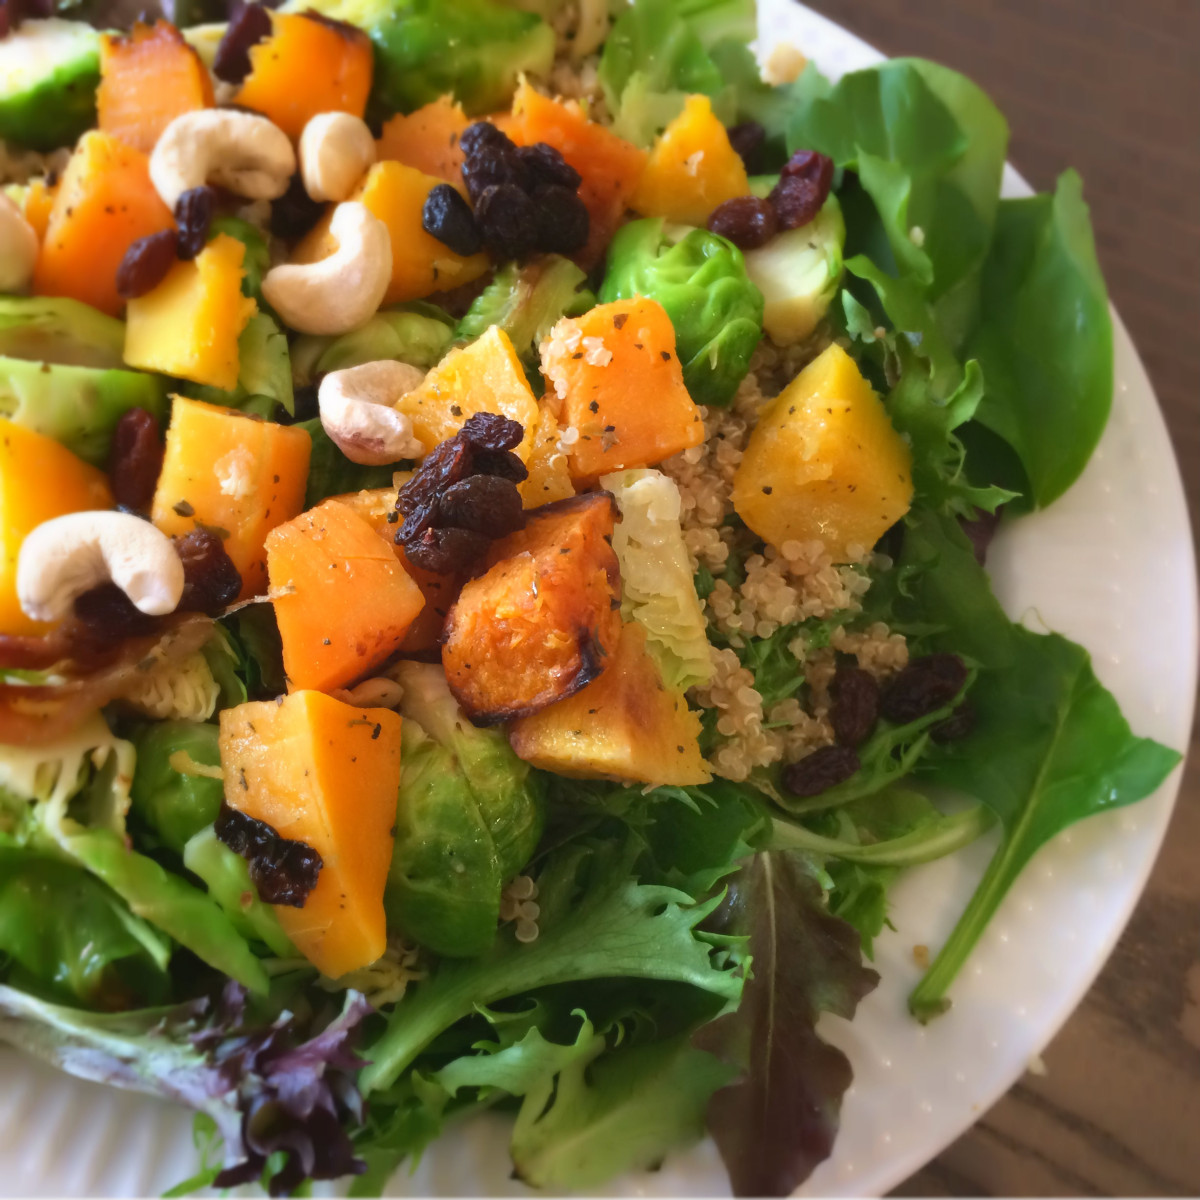 The Ultimate Fall Salad: Spinach, Quinoa, Squash and Brussel Sprouts